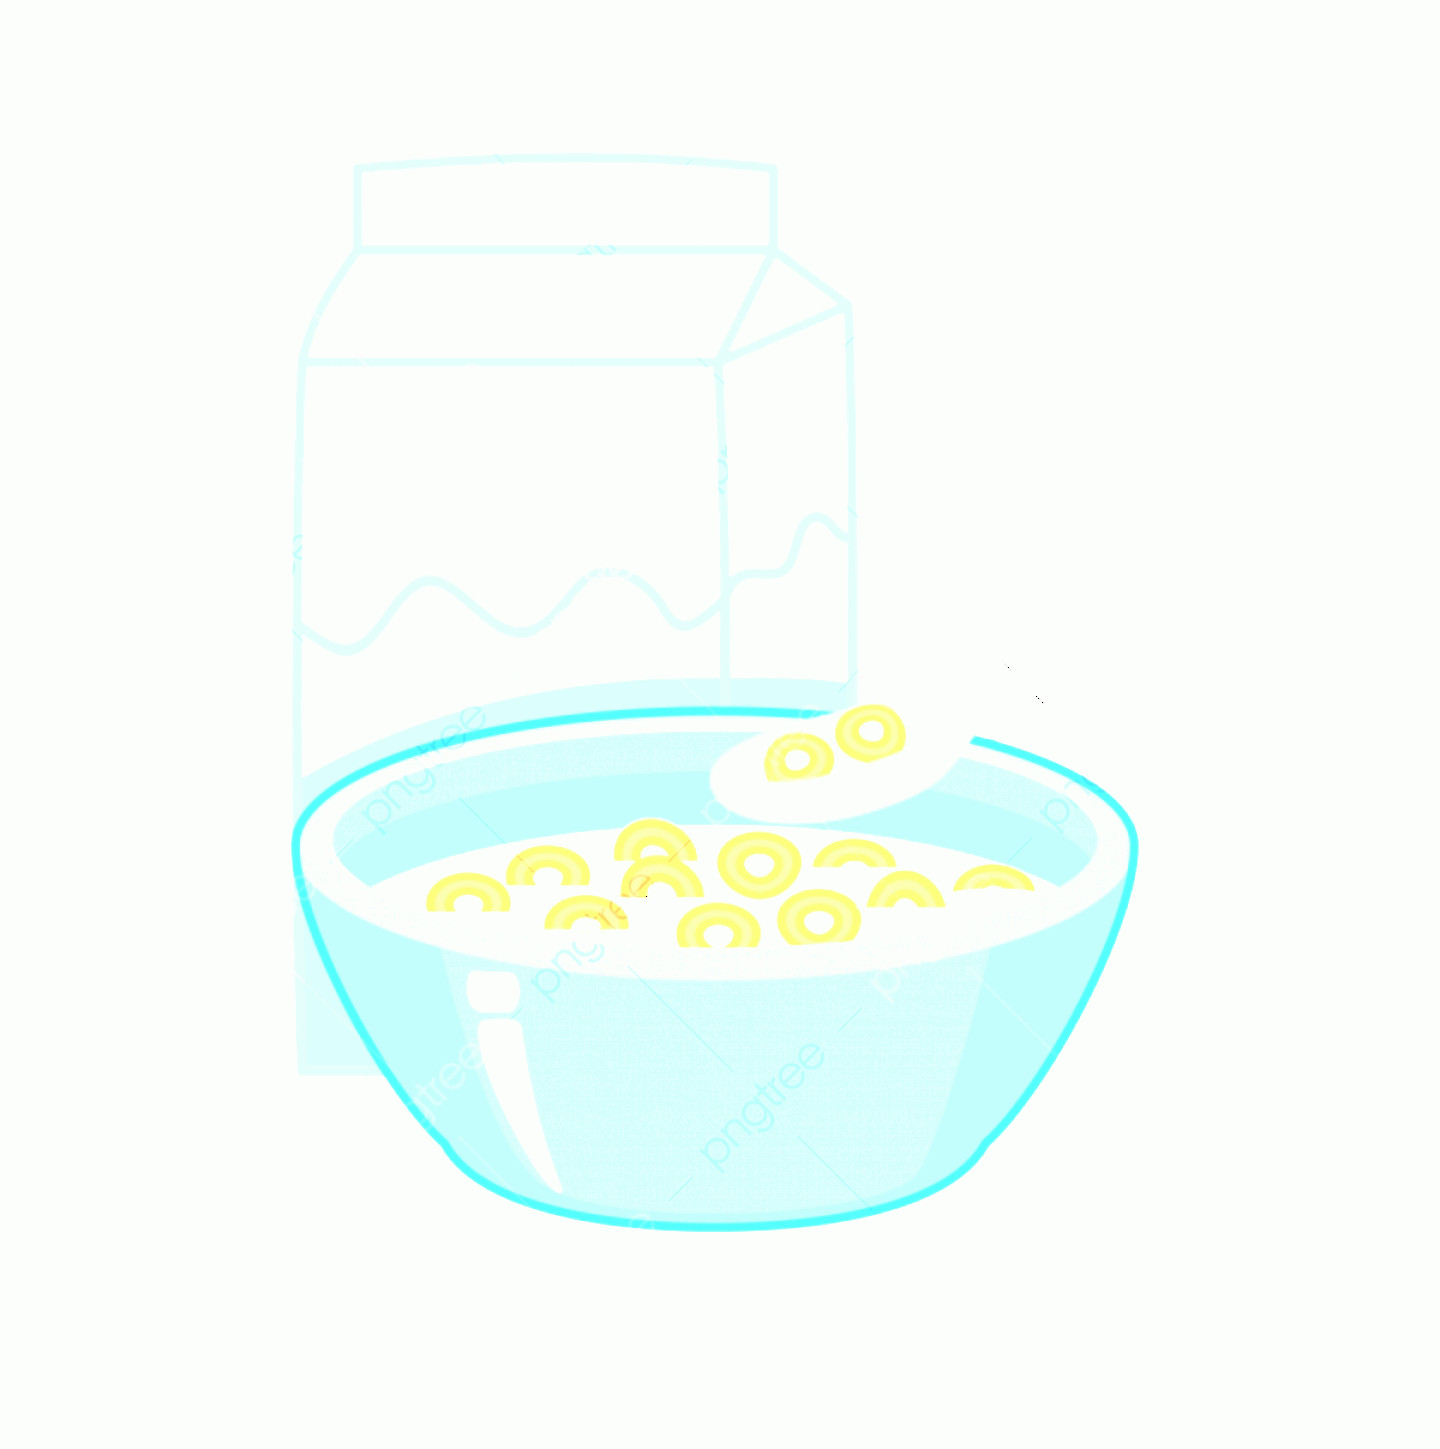 Vector Cereal Nutrition: Bowl Of Cereal And A Box Of Milk Vector Illustration Isolated On White Background